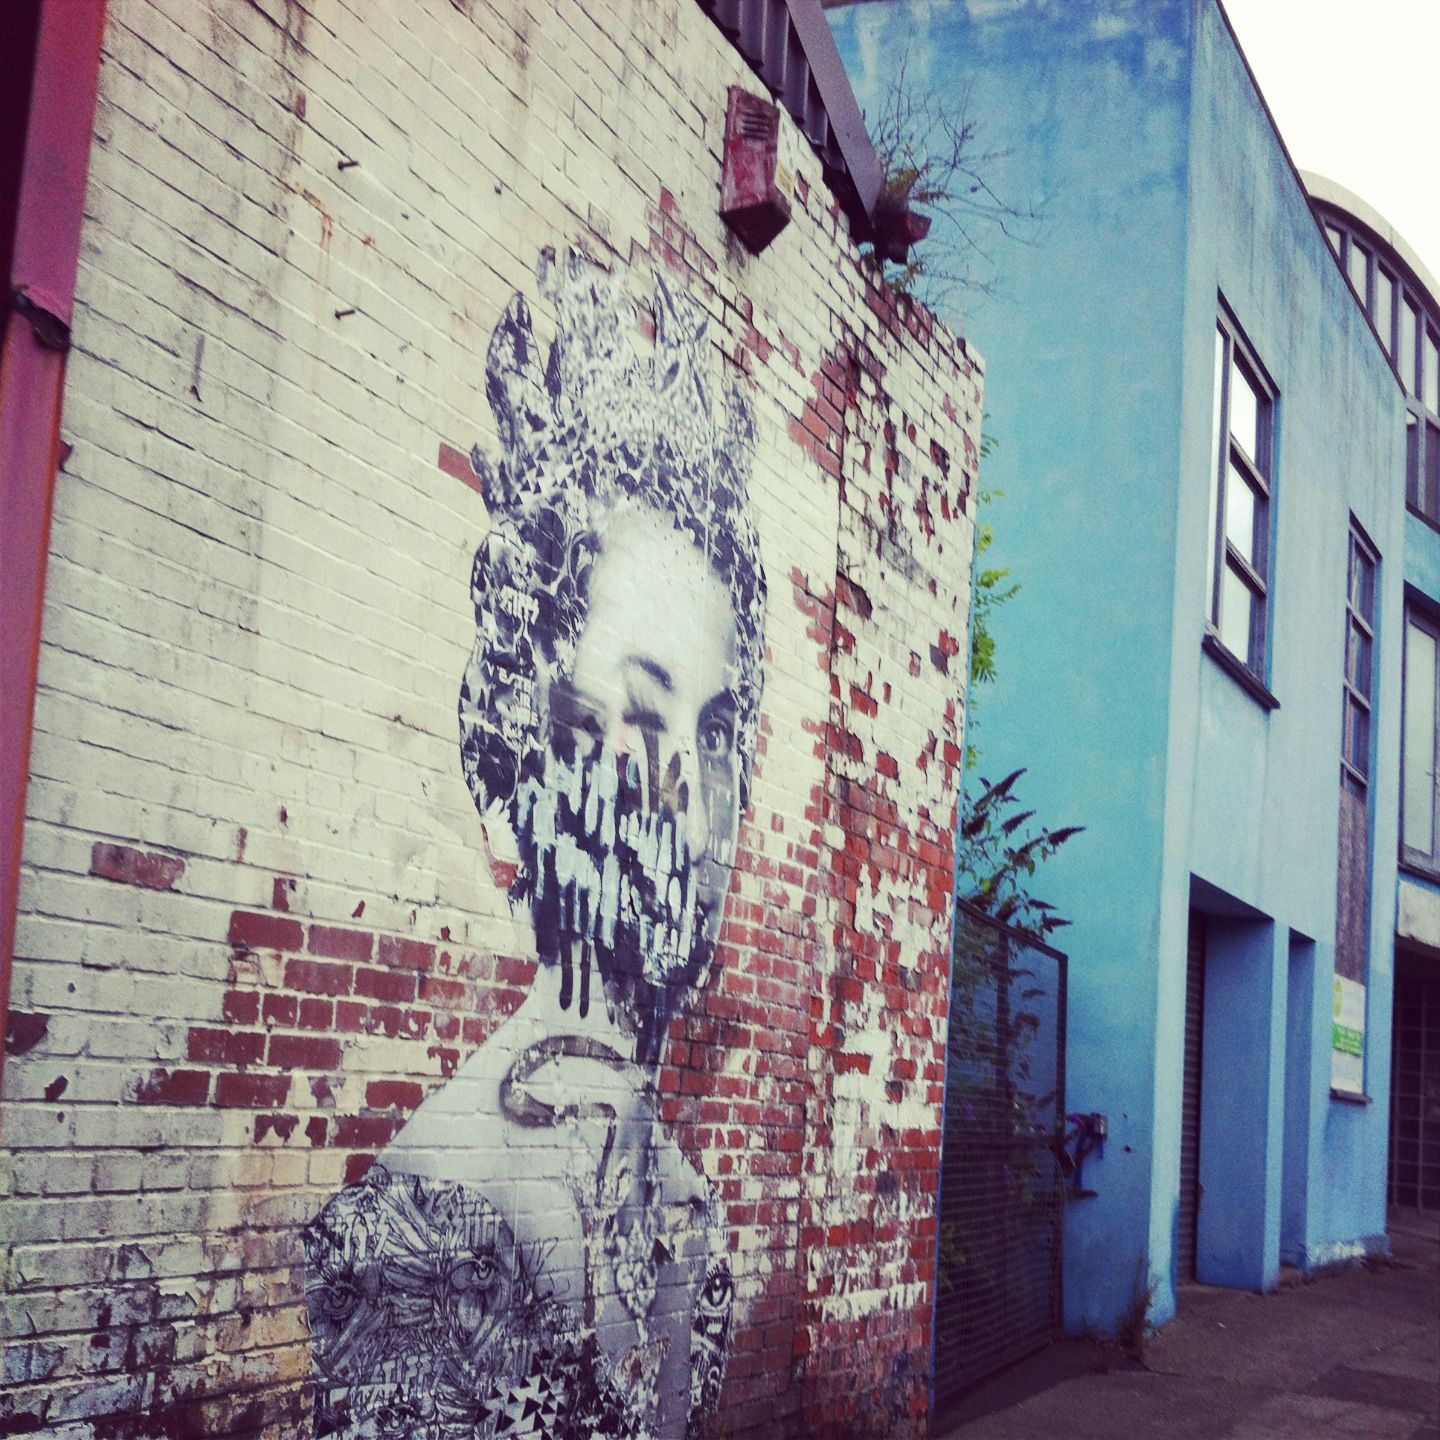 God Save The Queen, Ouseburn, Newcastle